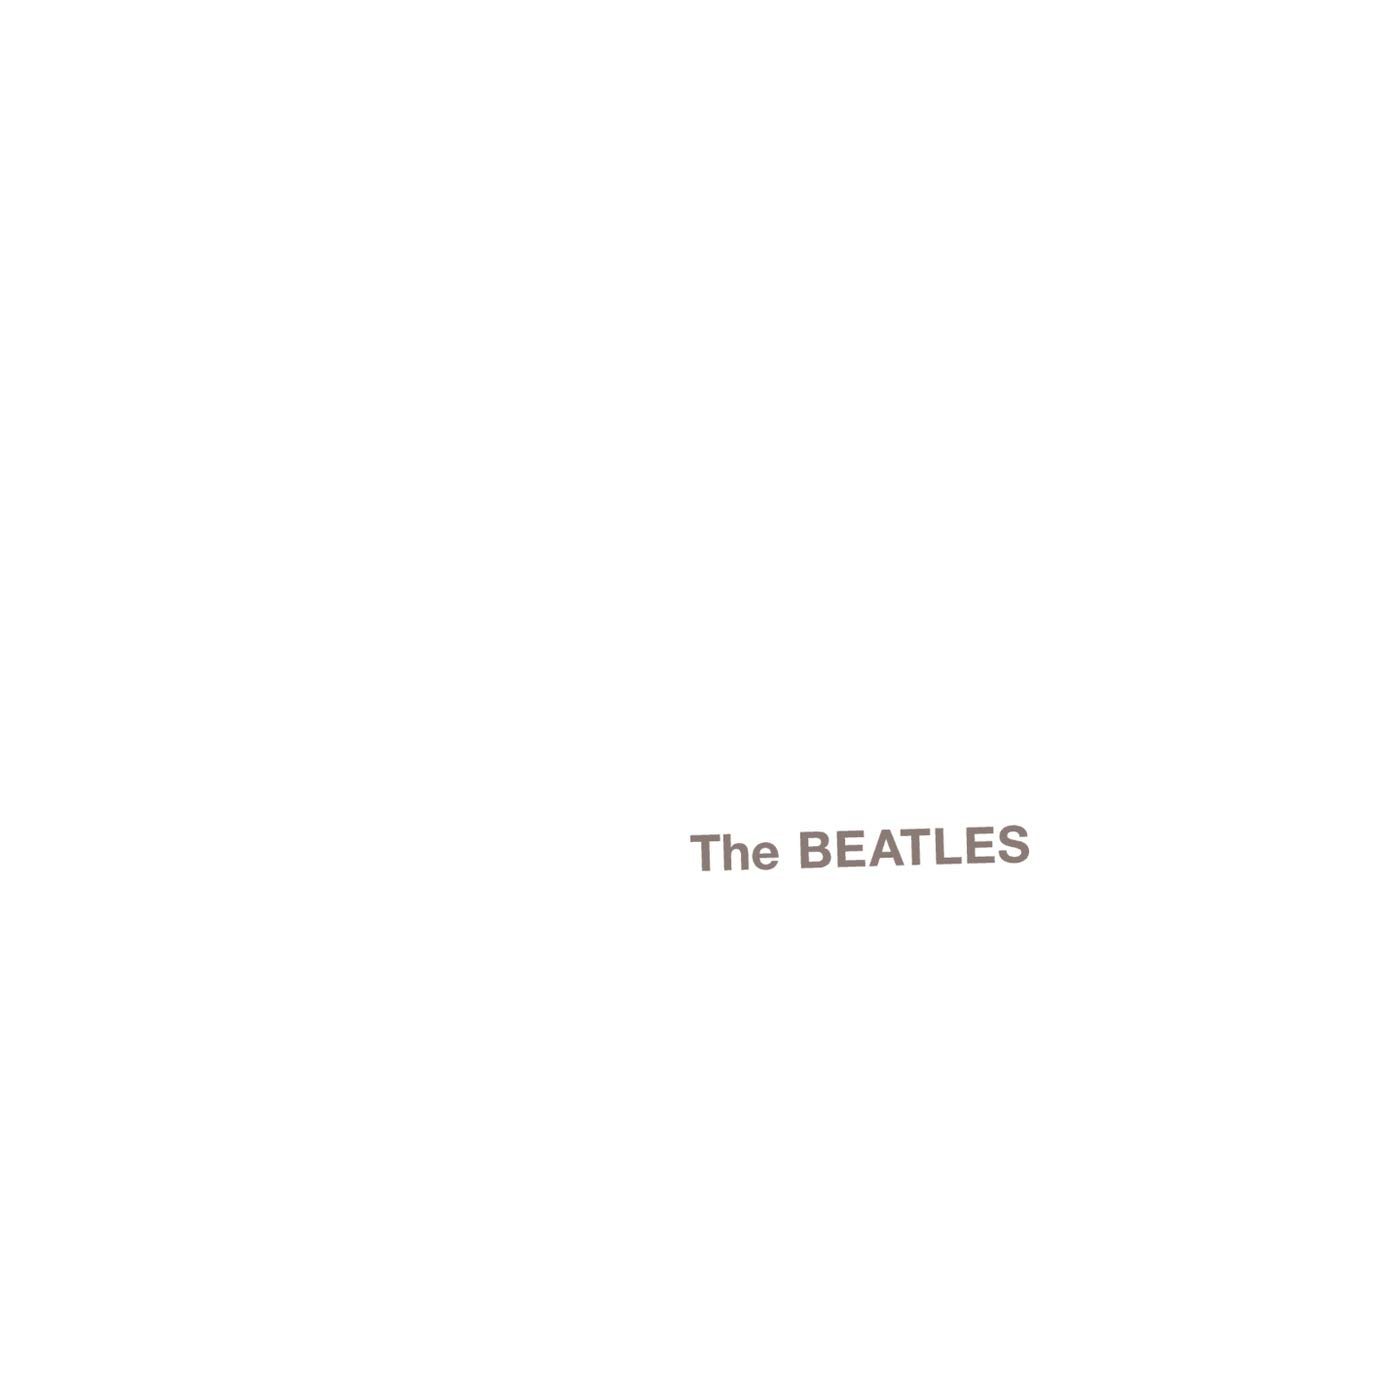 The Beatles – The Beatles (REISSUE REMASTERED 2LP) (2017) [FLAC]